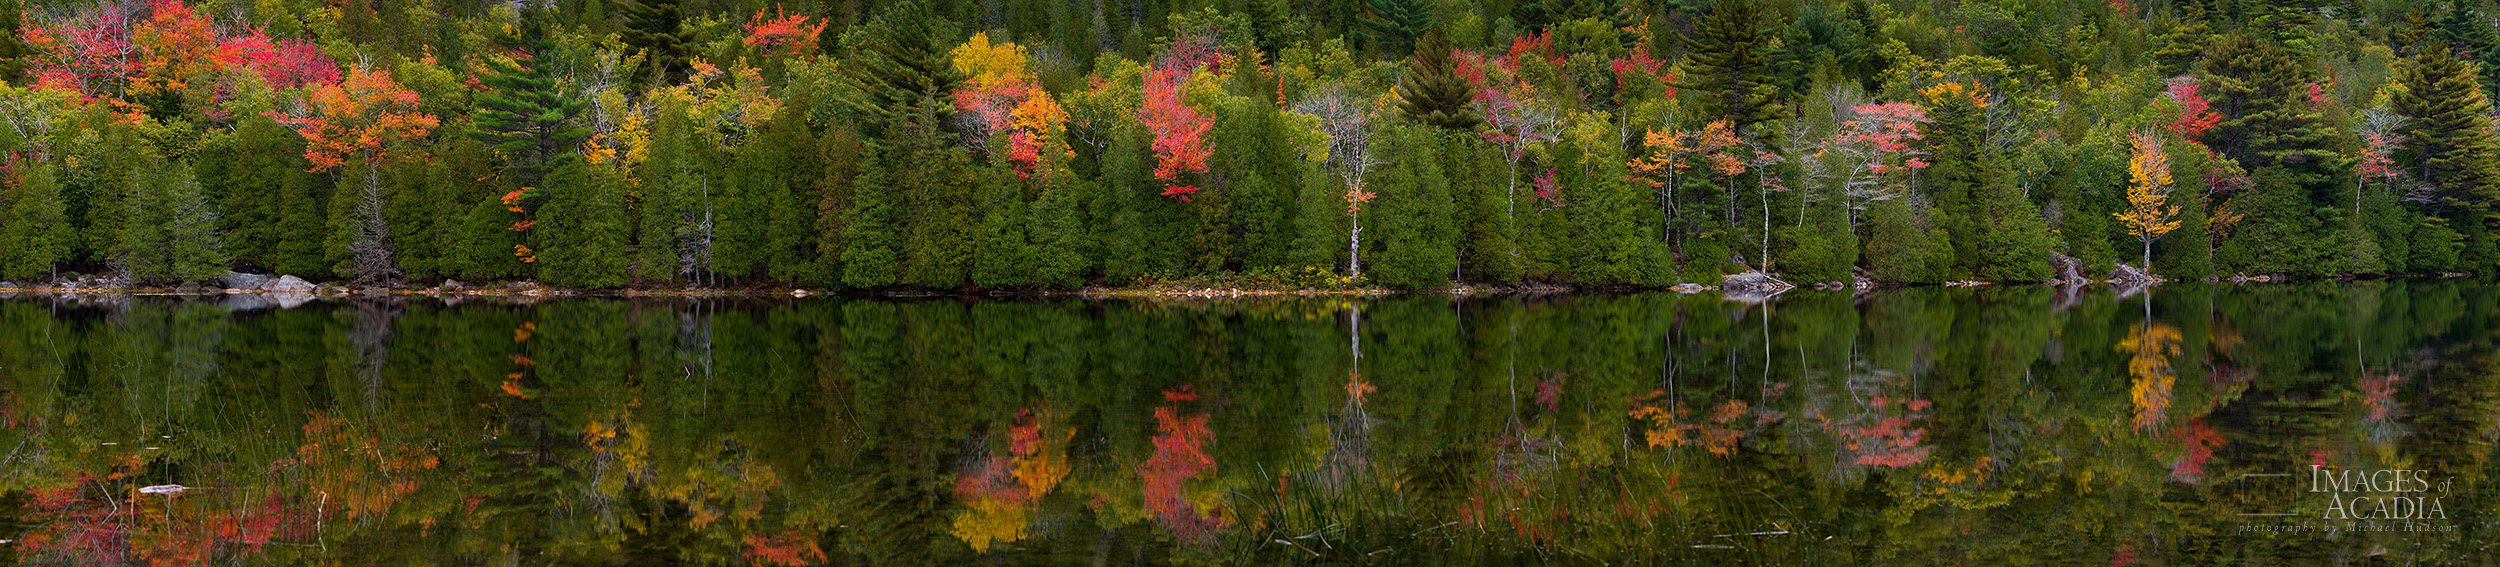 Autumn foliage reflected in the still waters of Bubble Pond